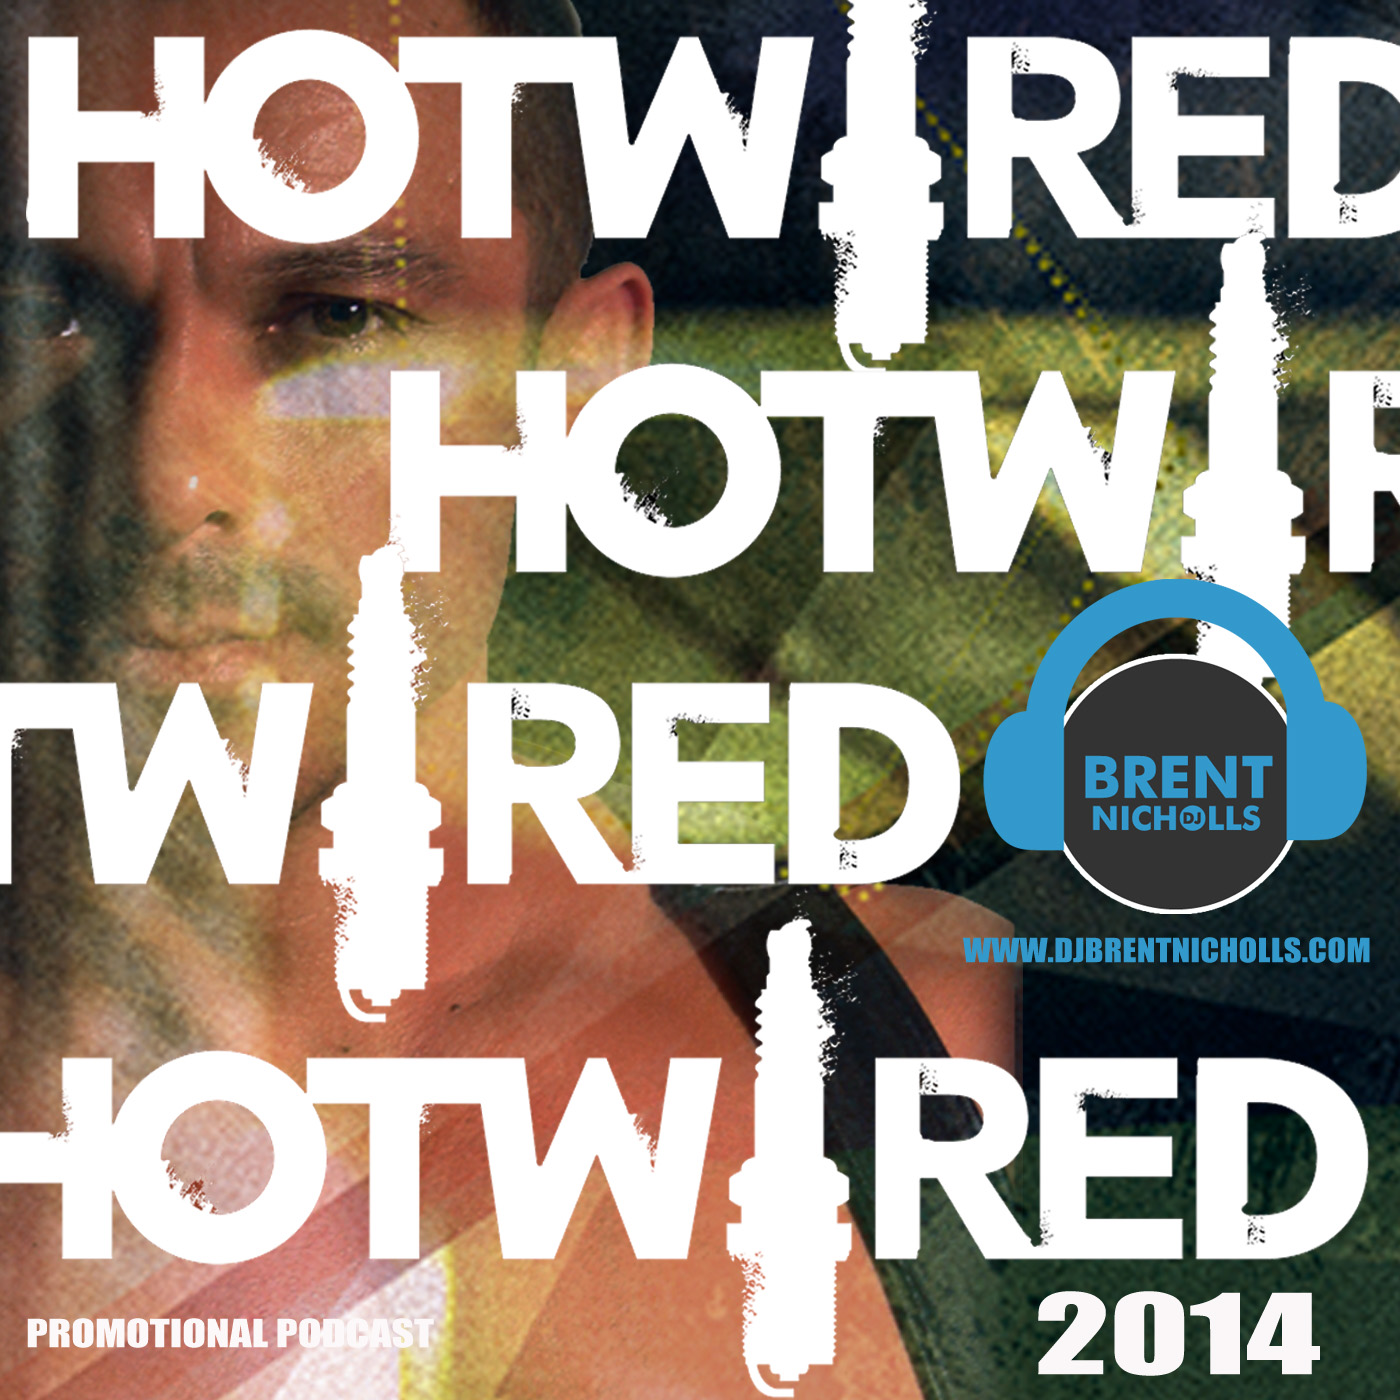 PODCAST: HOTWIRED 2014